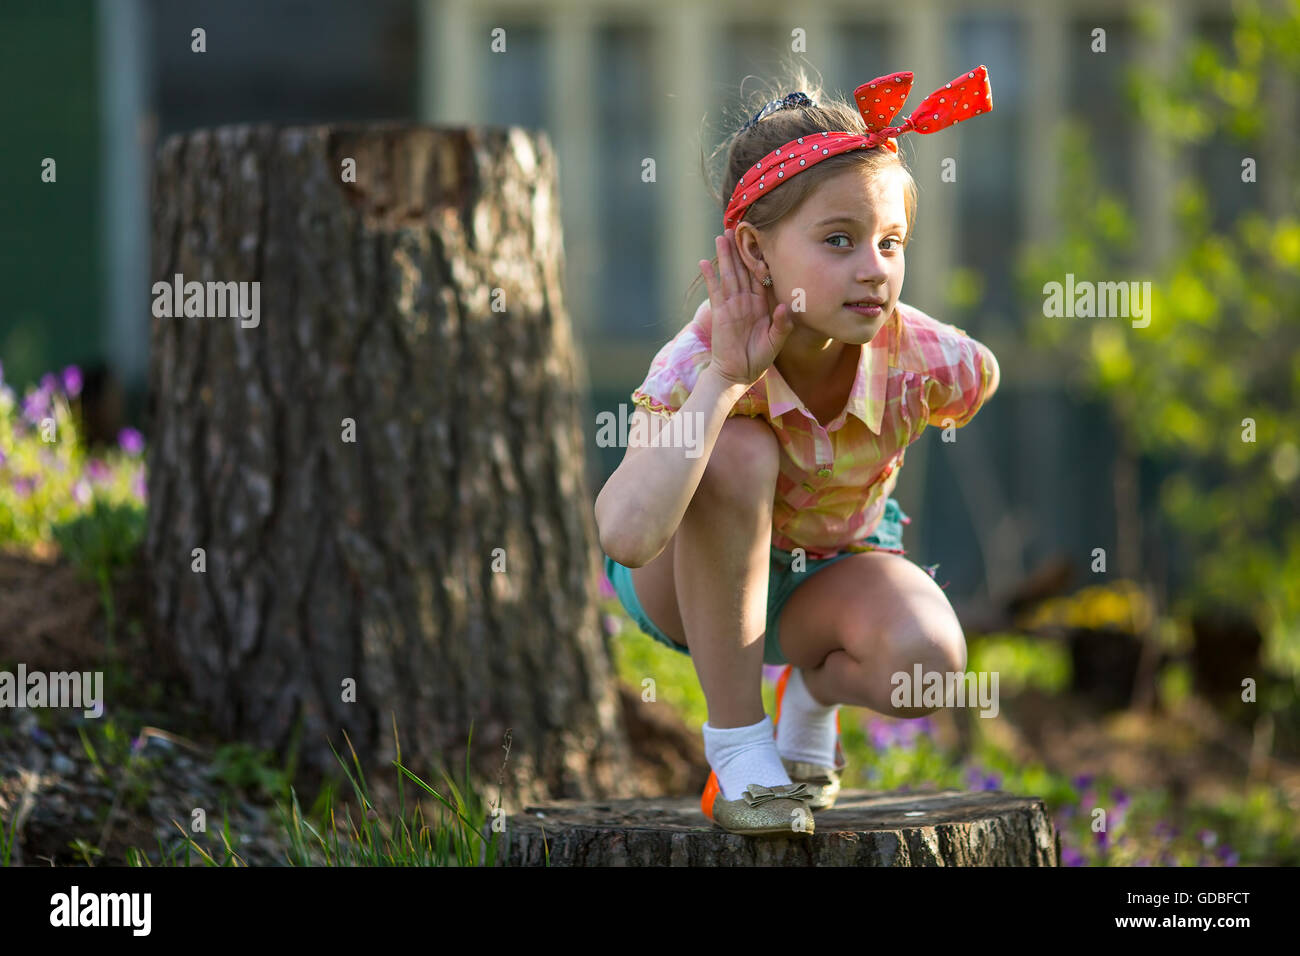 Little naughty girl outdoors, makes the gesture of listening. Stock Photo